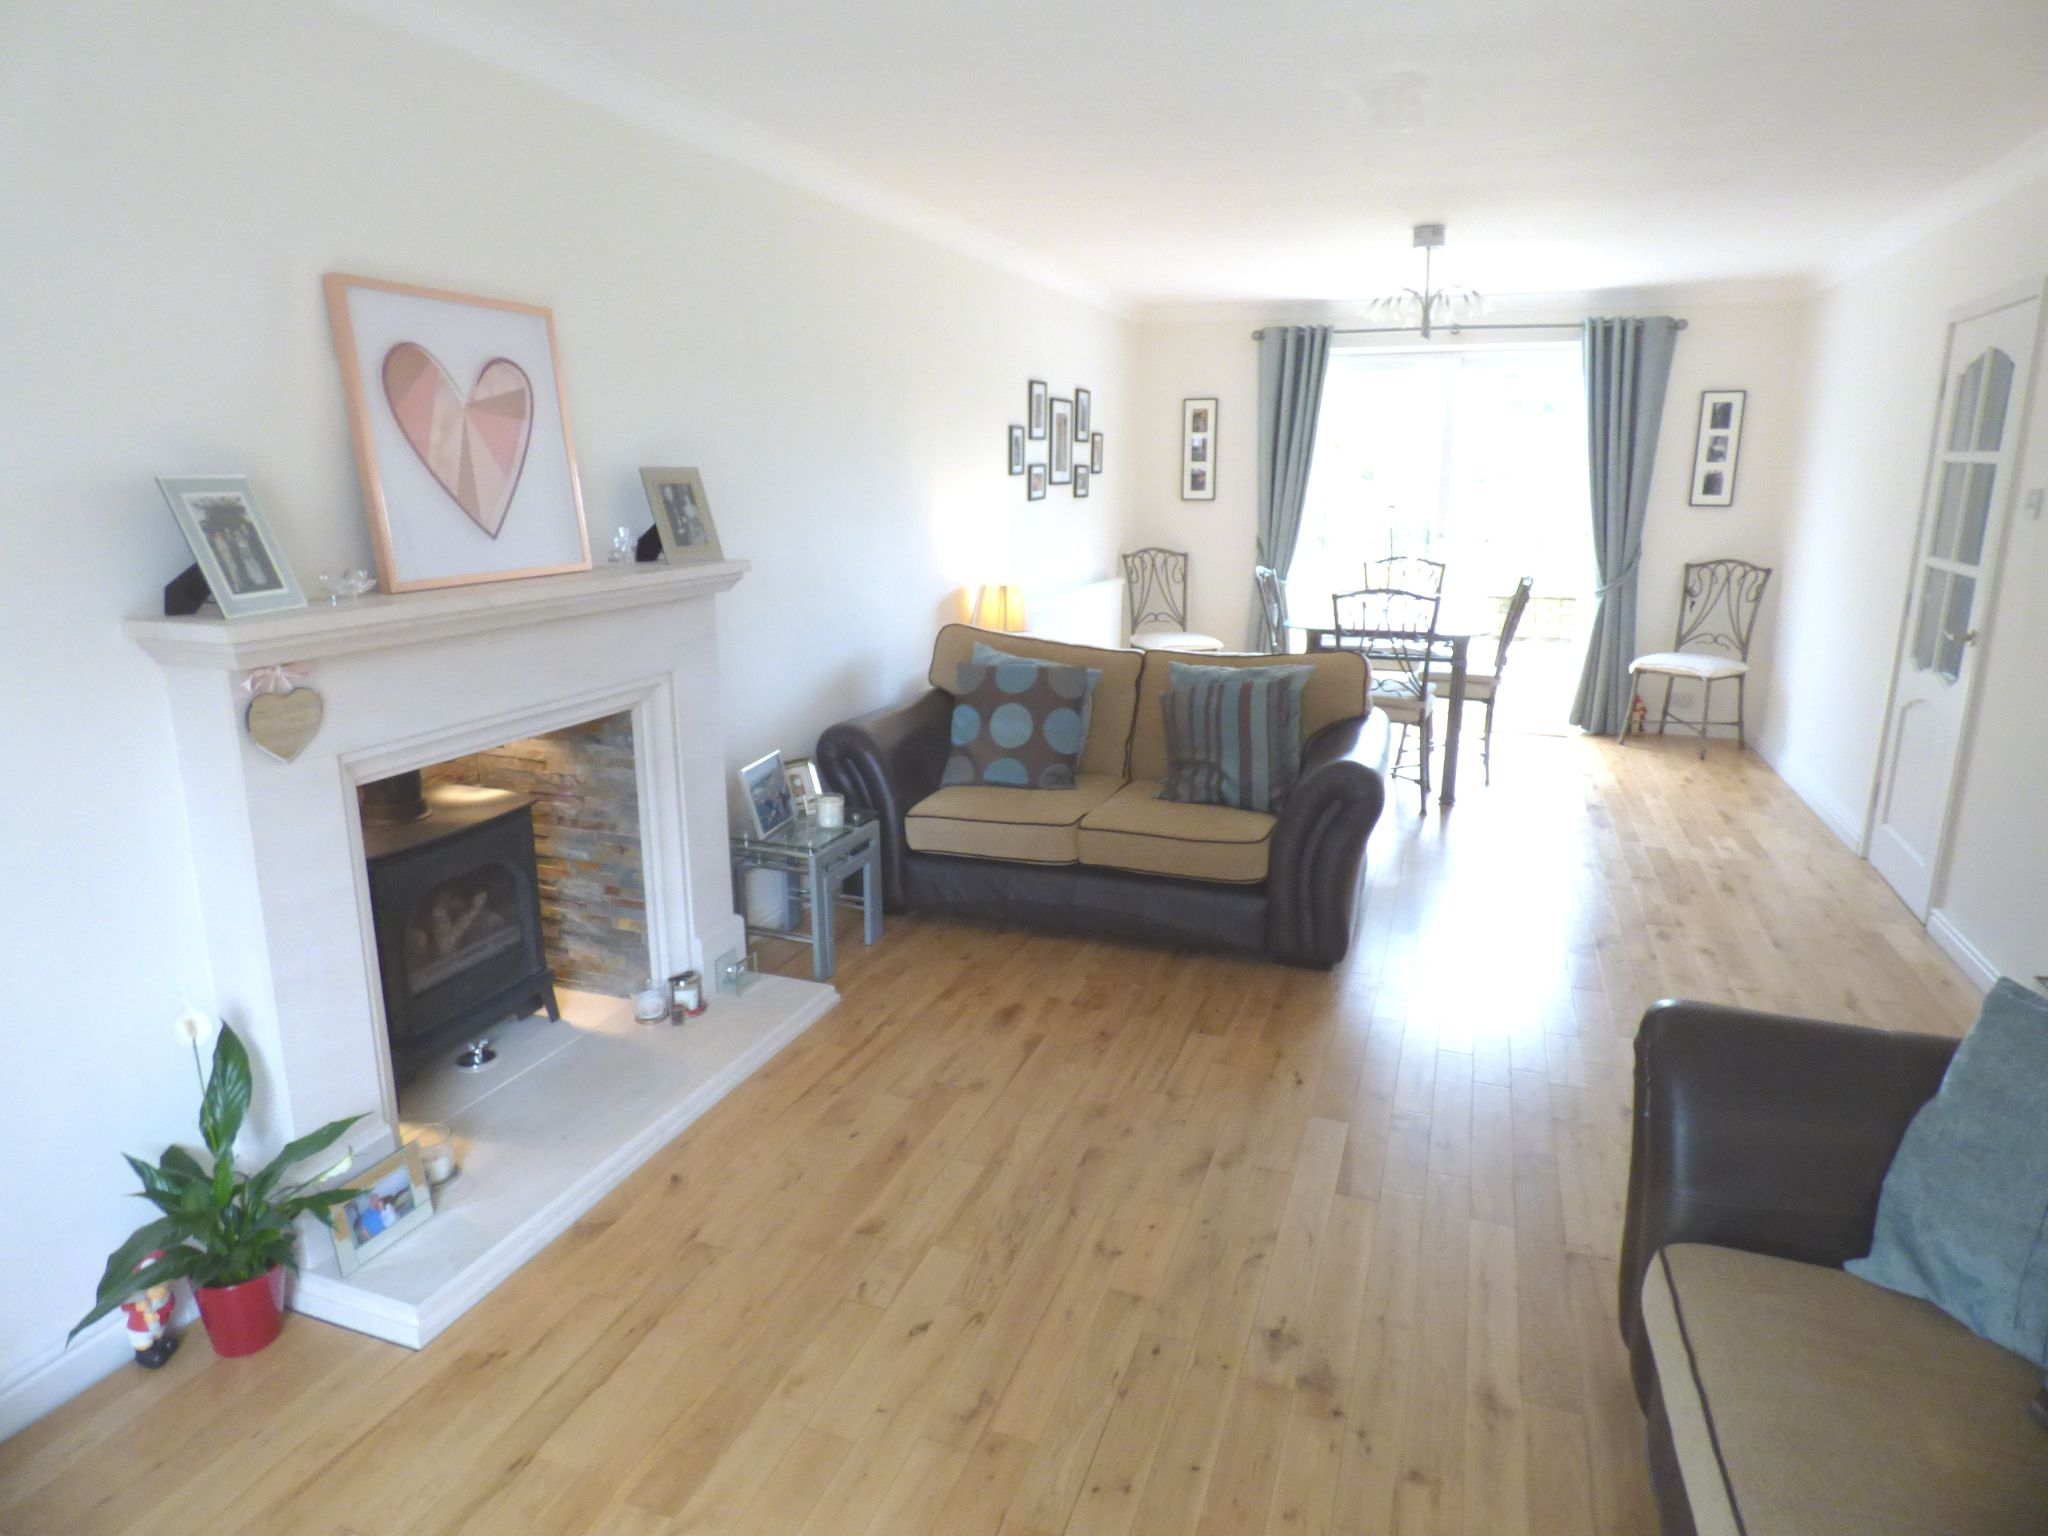 5 Bedroom Detached House For Sale - Lounge